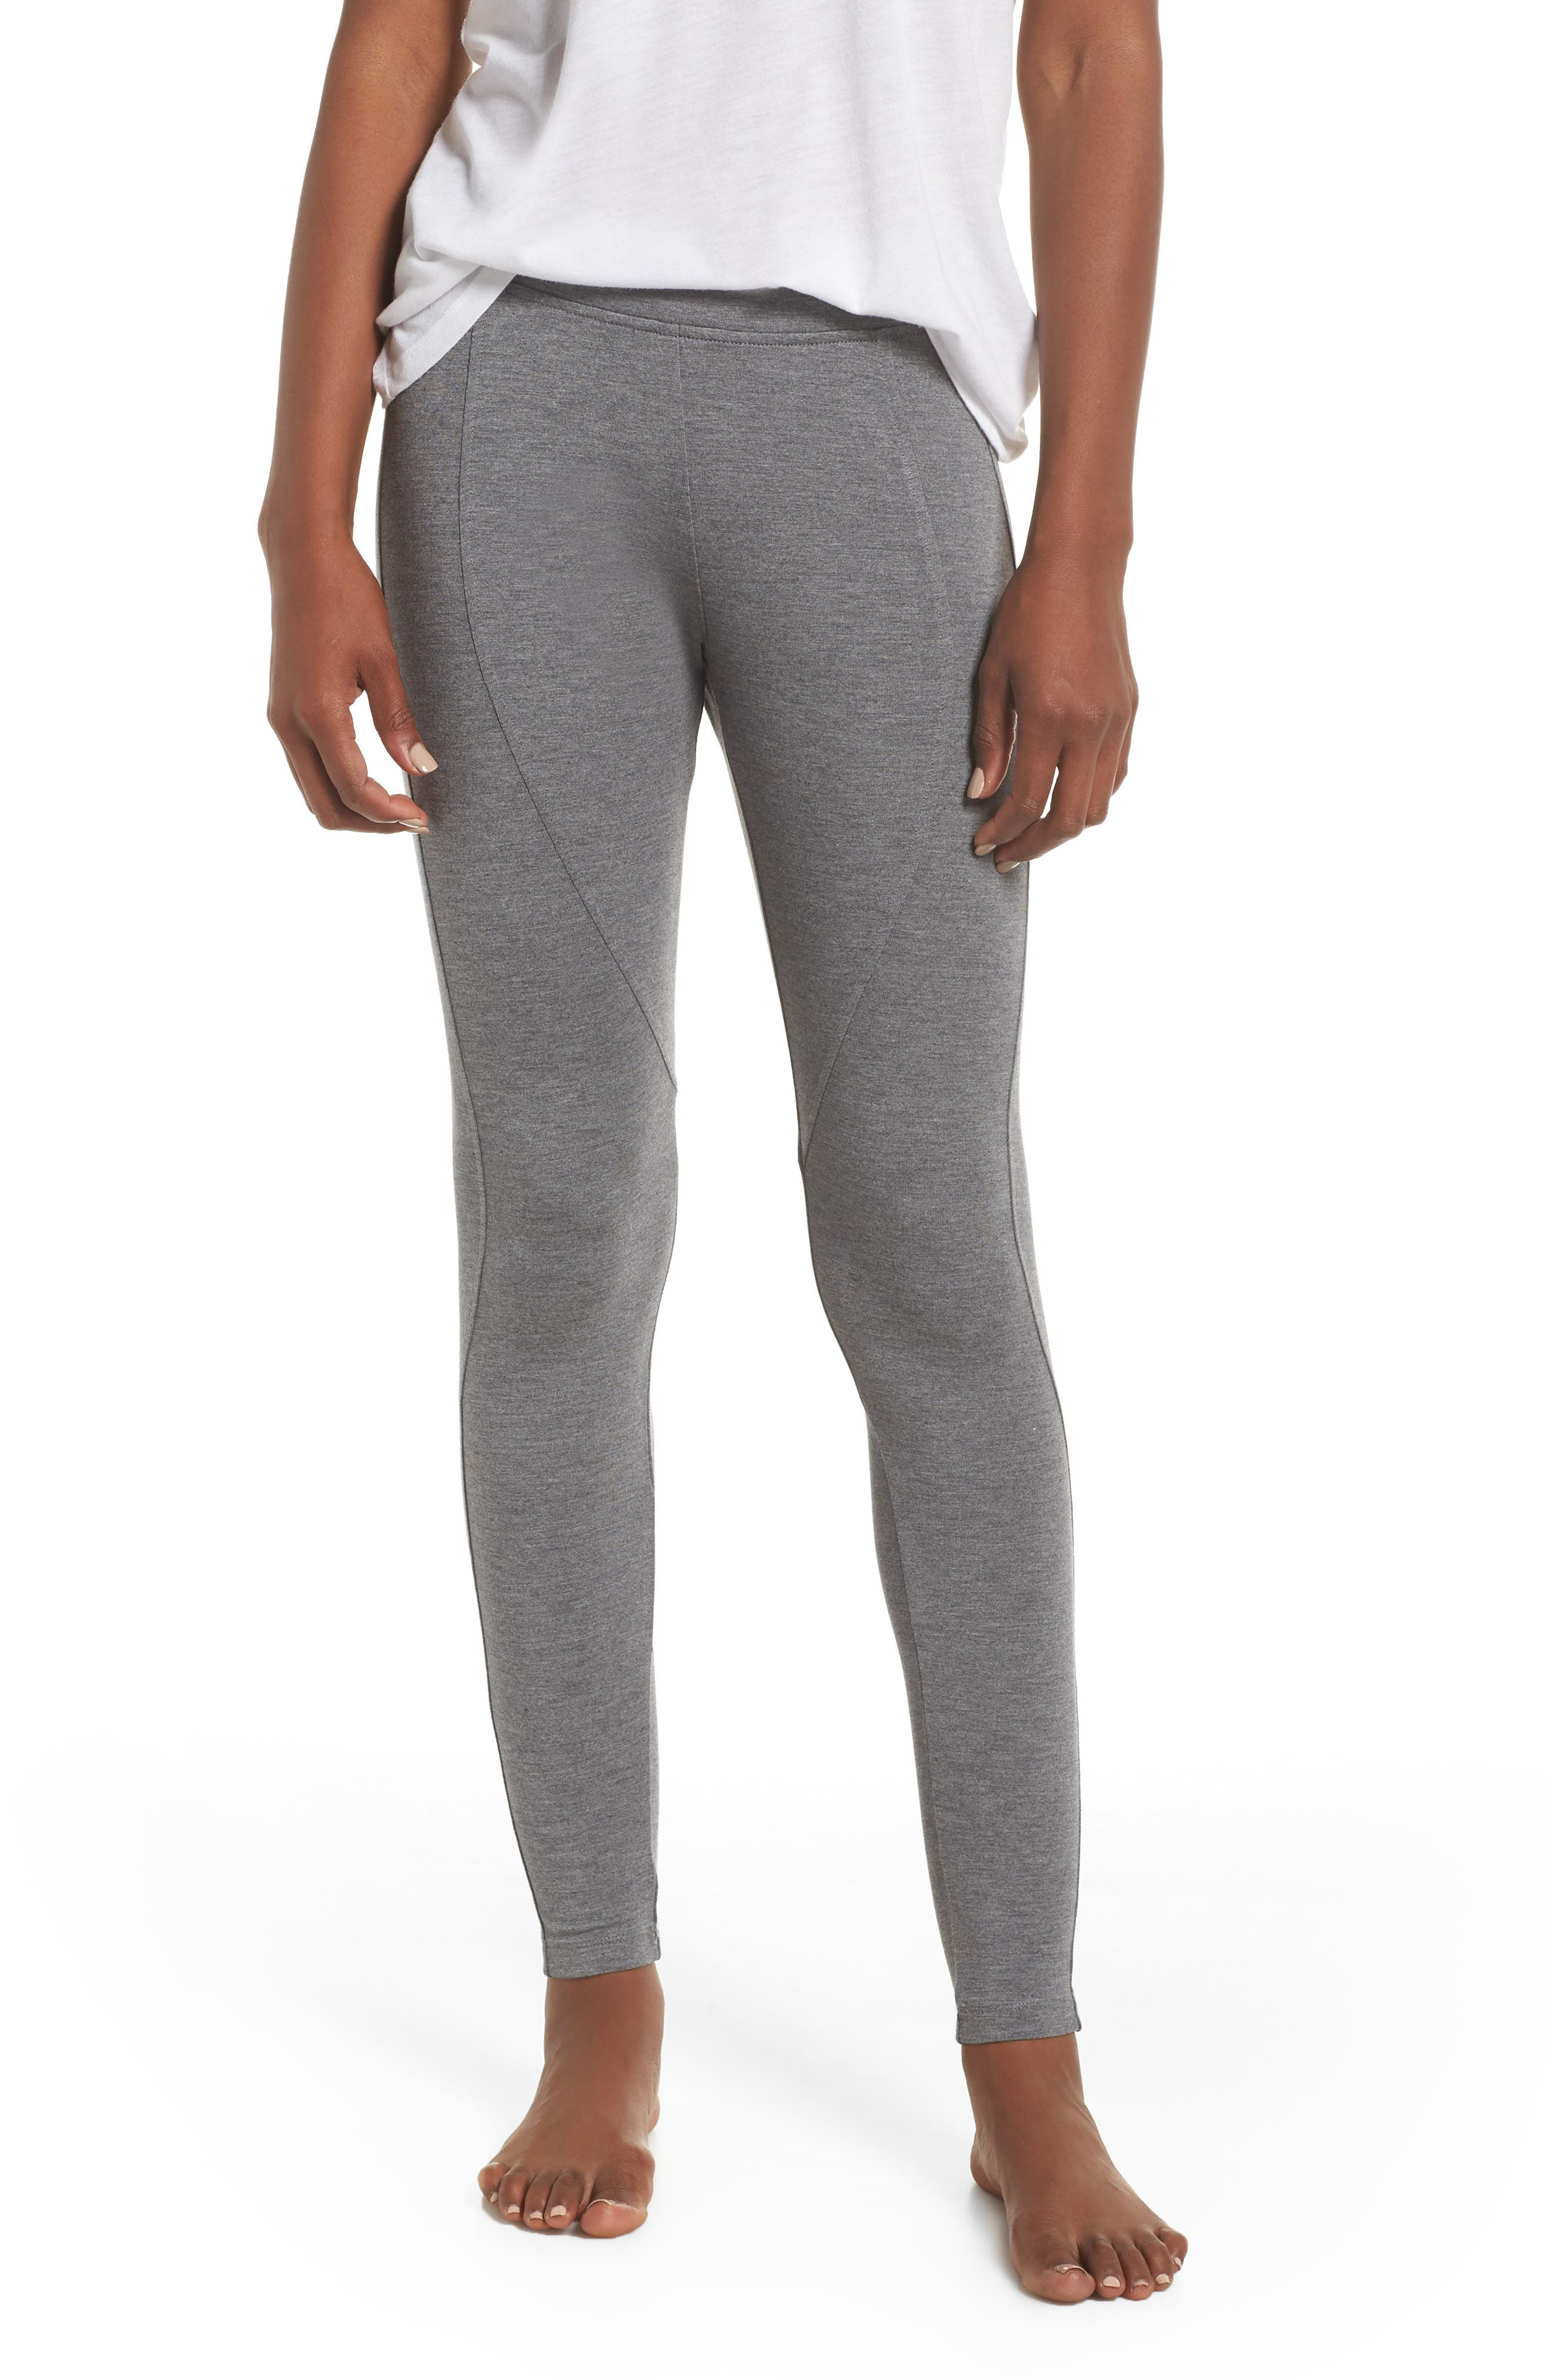 UGG<SUP>®</SUP>, 'Watts' Terry Leggings, Main thumbnail 1, color, CHARCOAL HEATHER